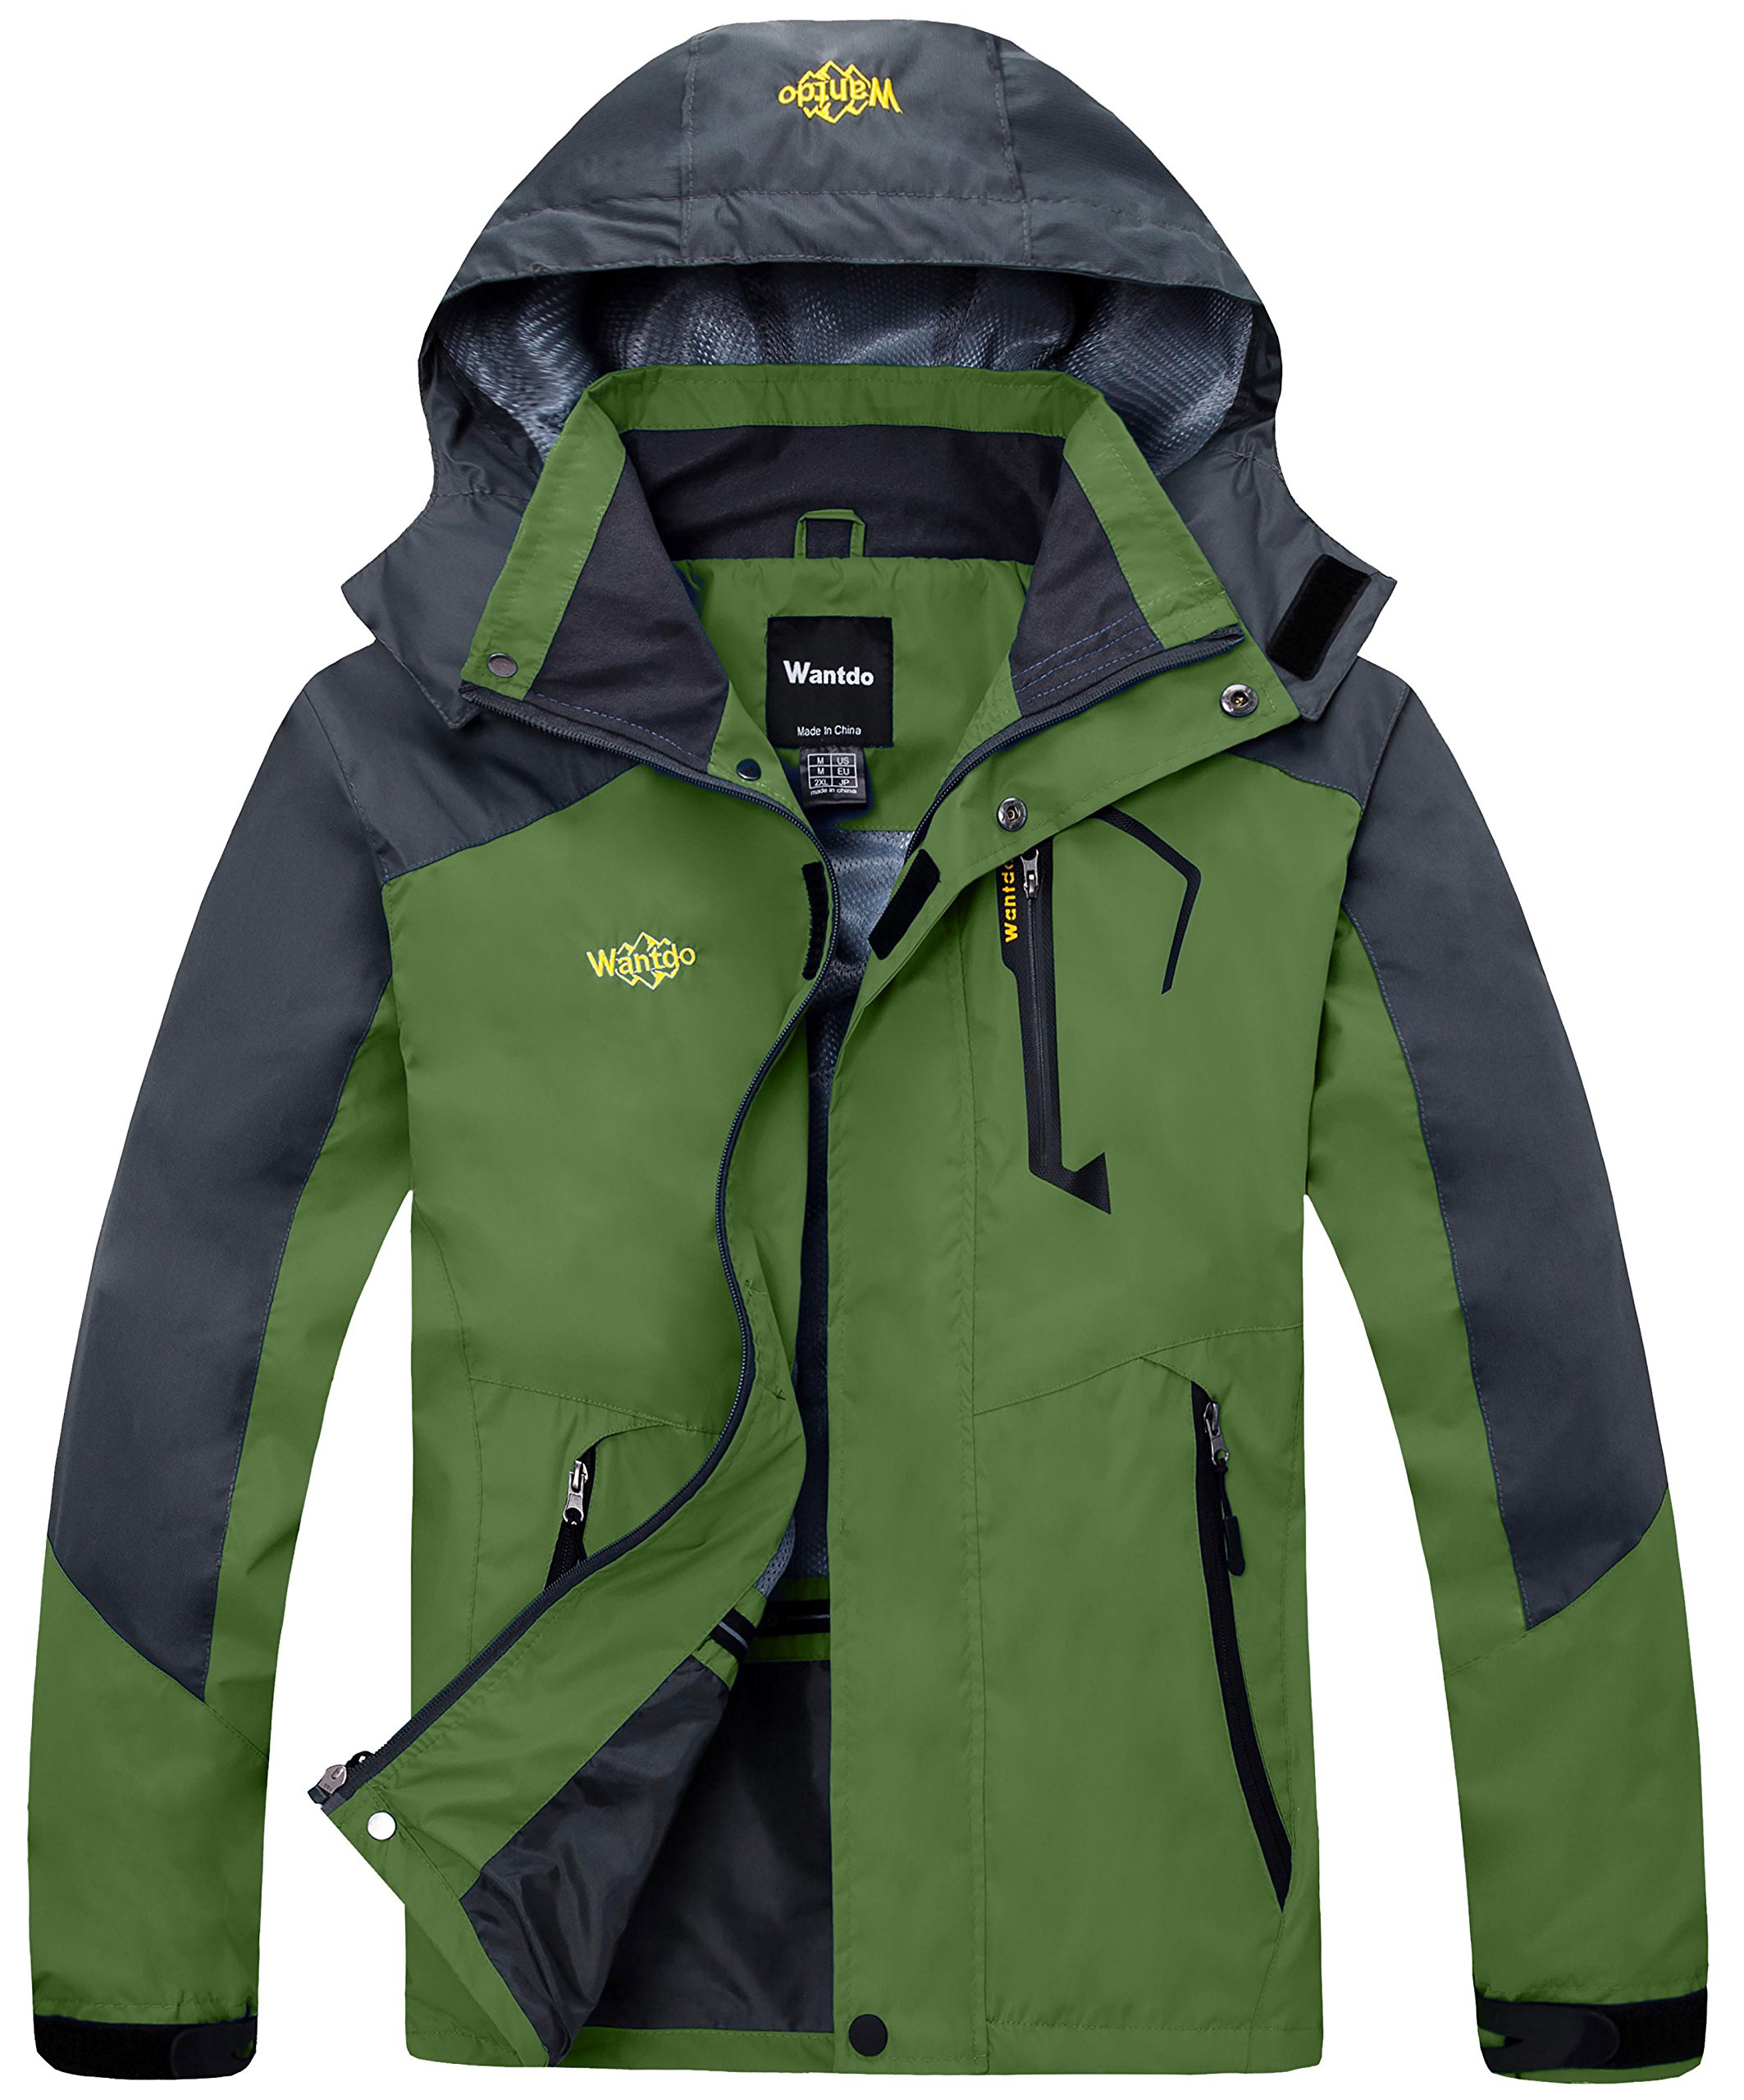 Wantdo Men's Hunting Jacket Clothing for Running with Hidden Pockets Grass Green US L